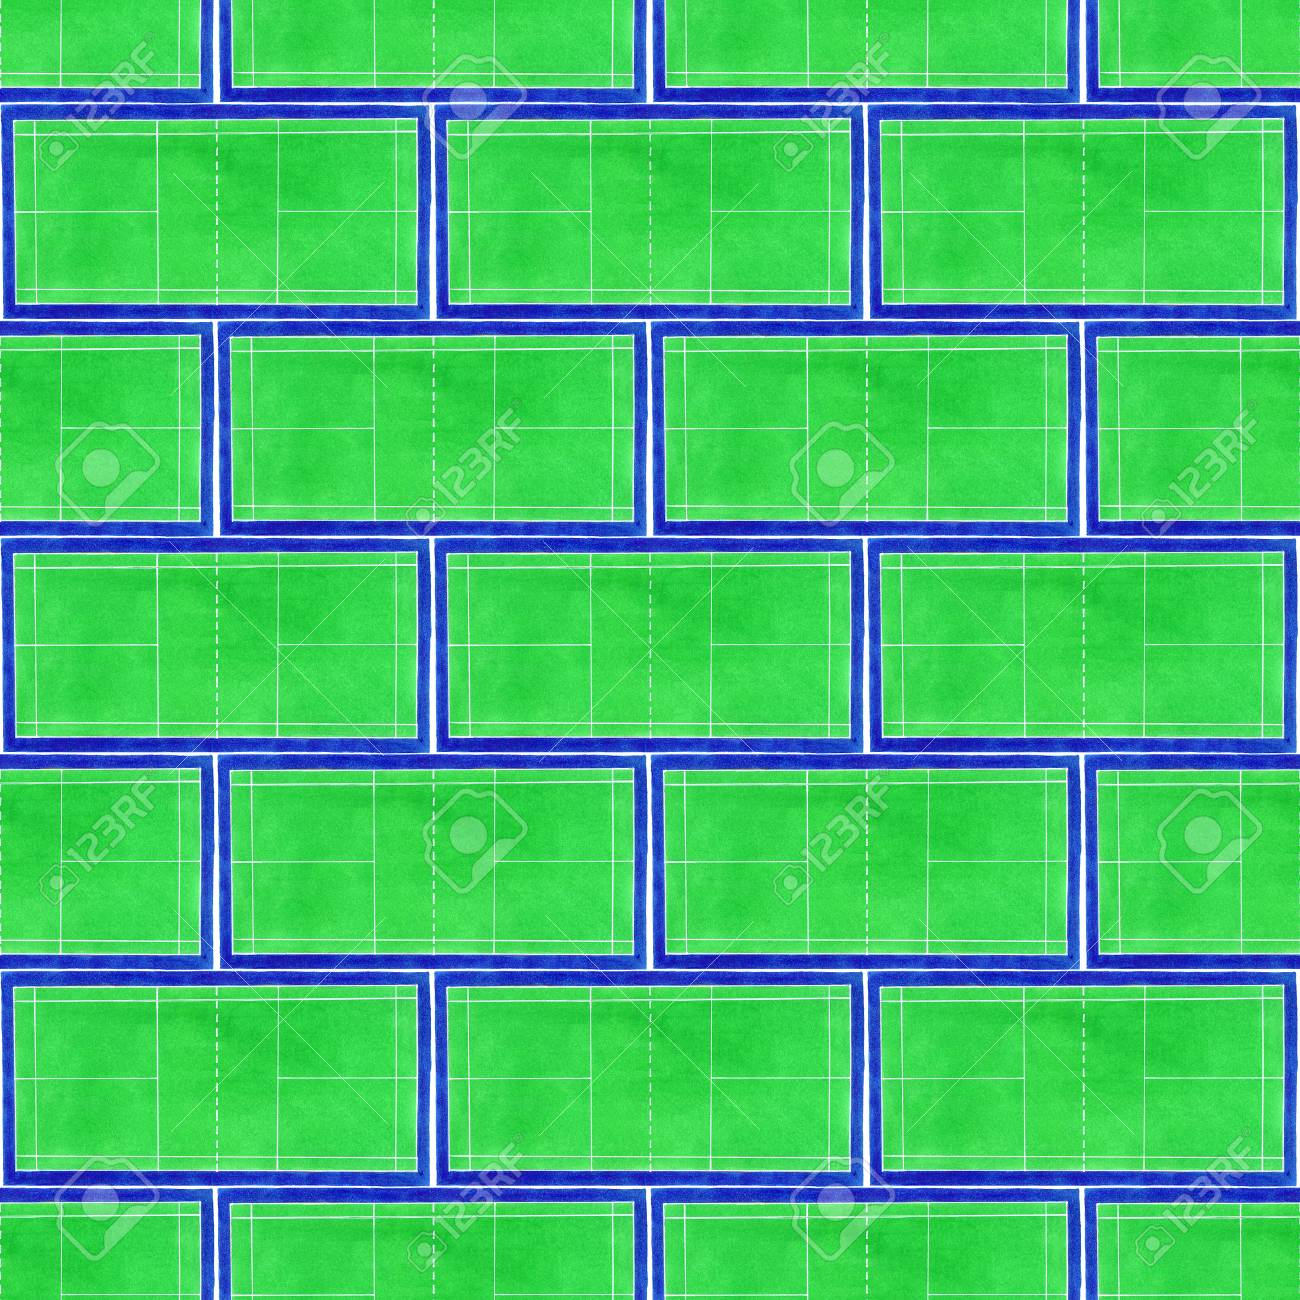 Badminton court  Seamless pattern with hand-drawn green tennis